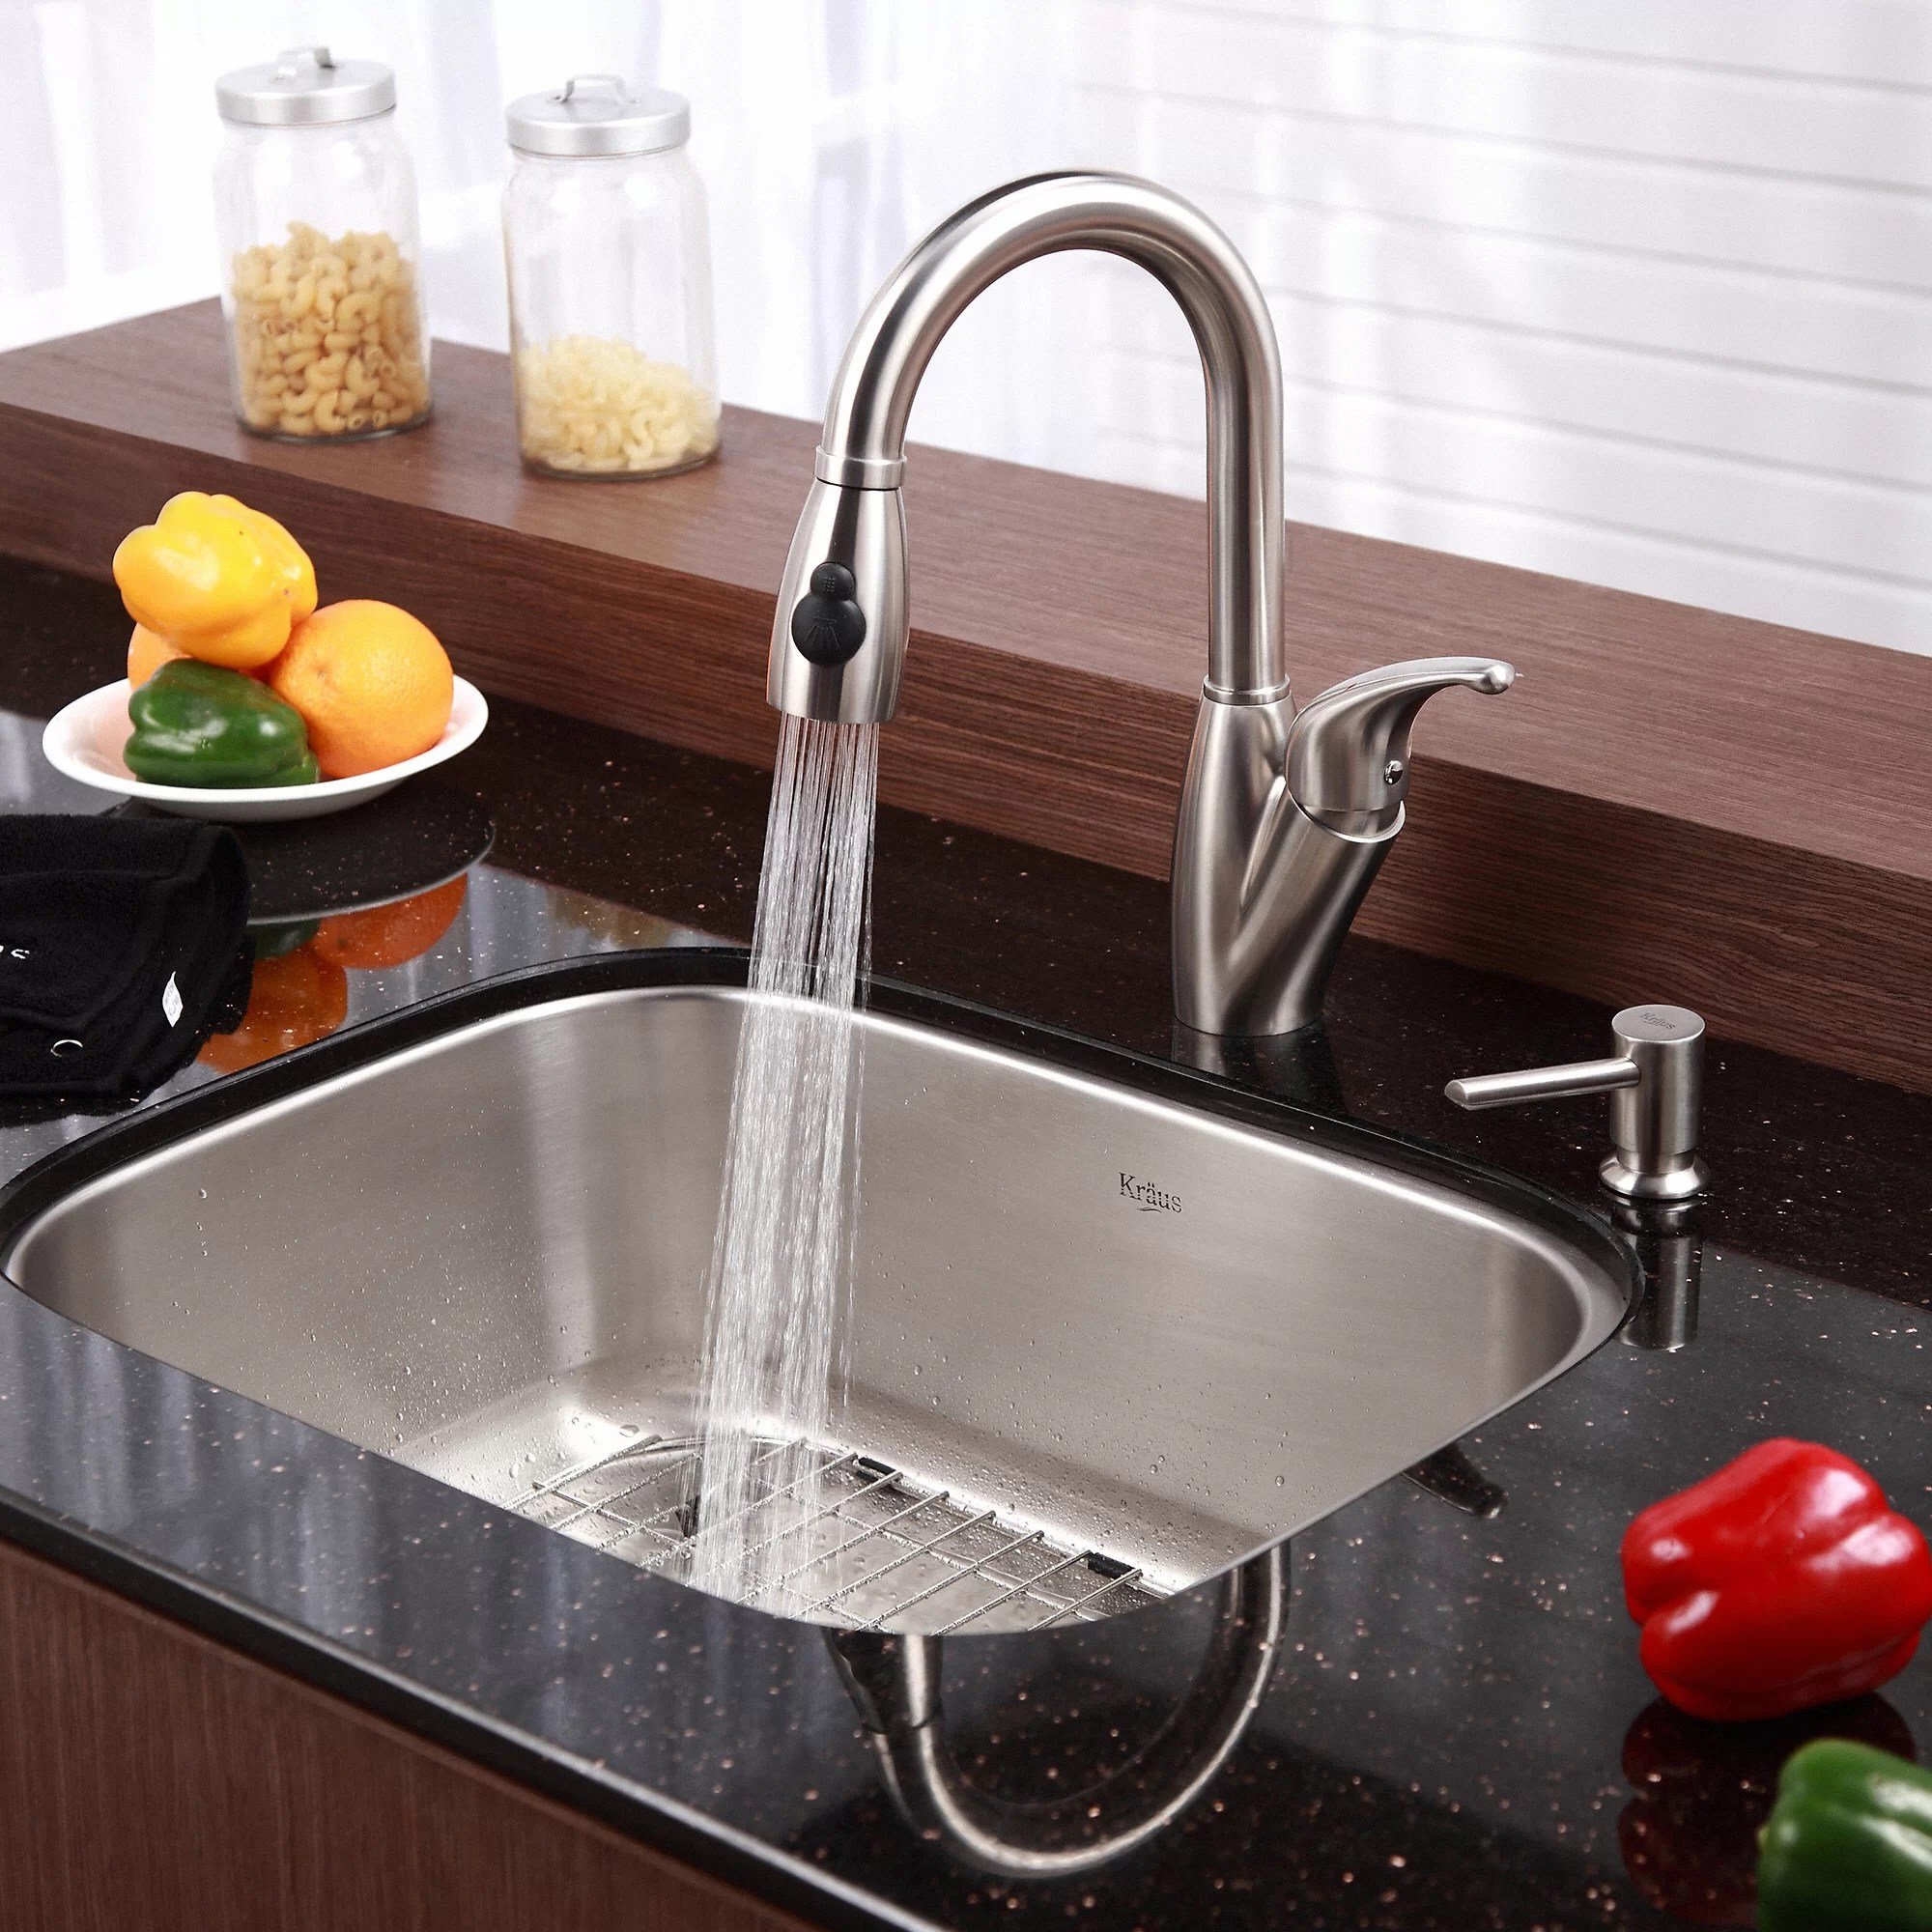 Kitchen Sinks Kraus Stainless Steel 16 Gauge Undermount 31 5 Quot Single